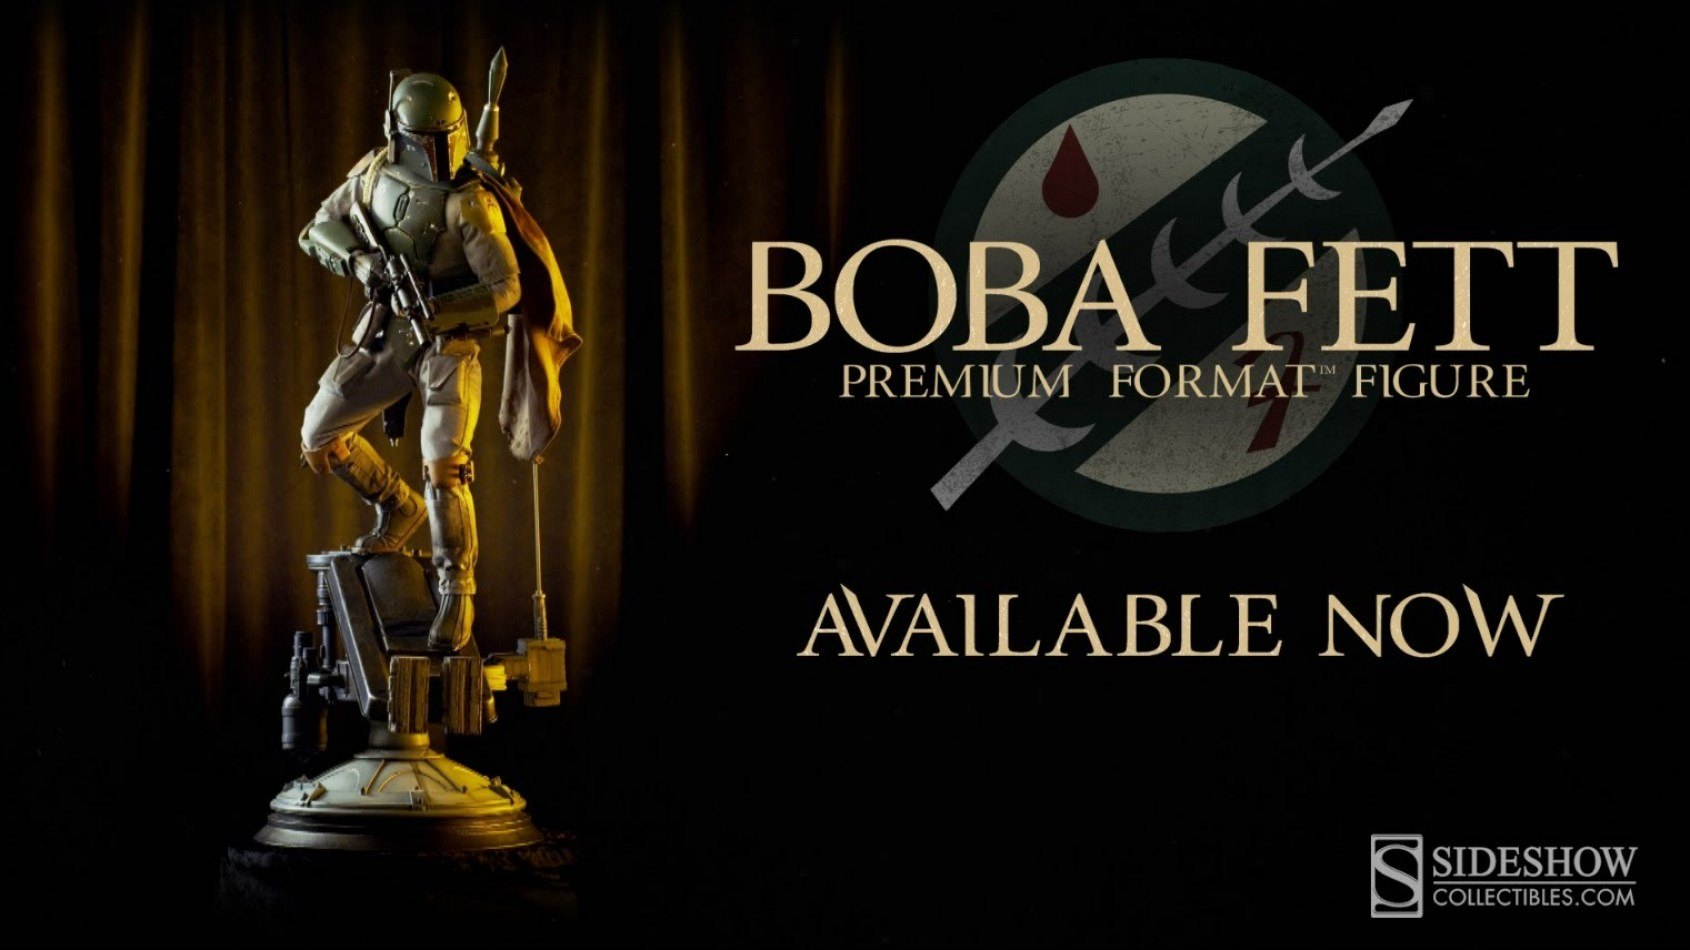 [Sideshow Collectibles] Boba Fett Premium Format™